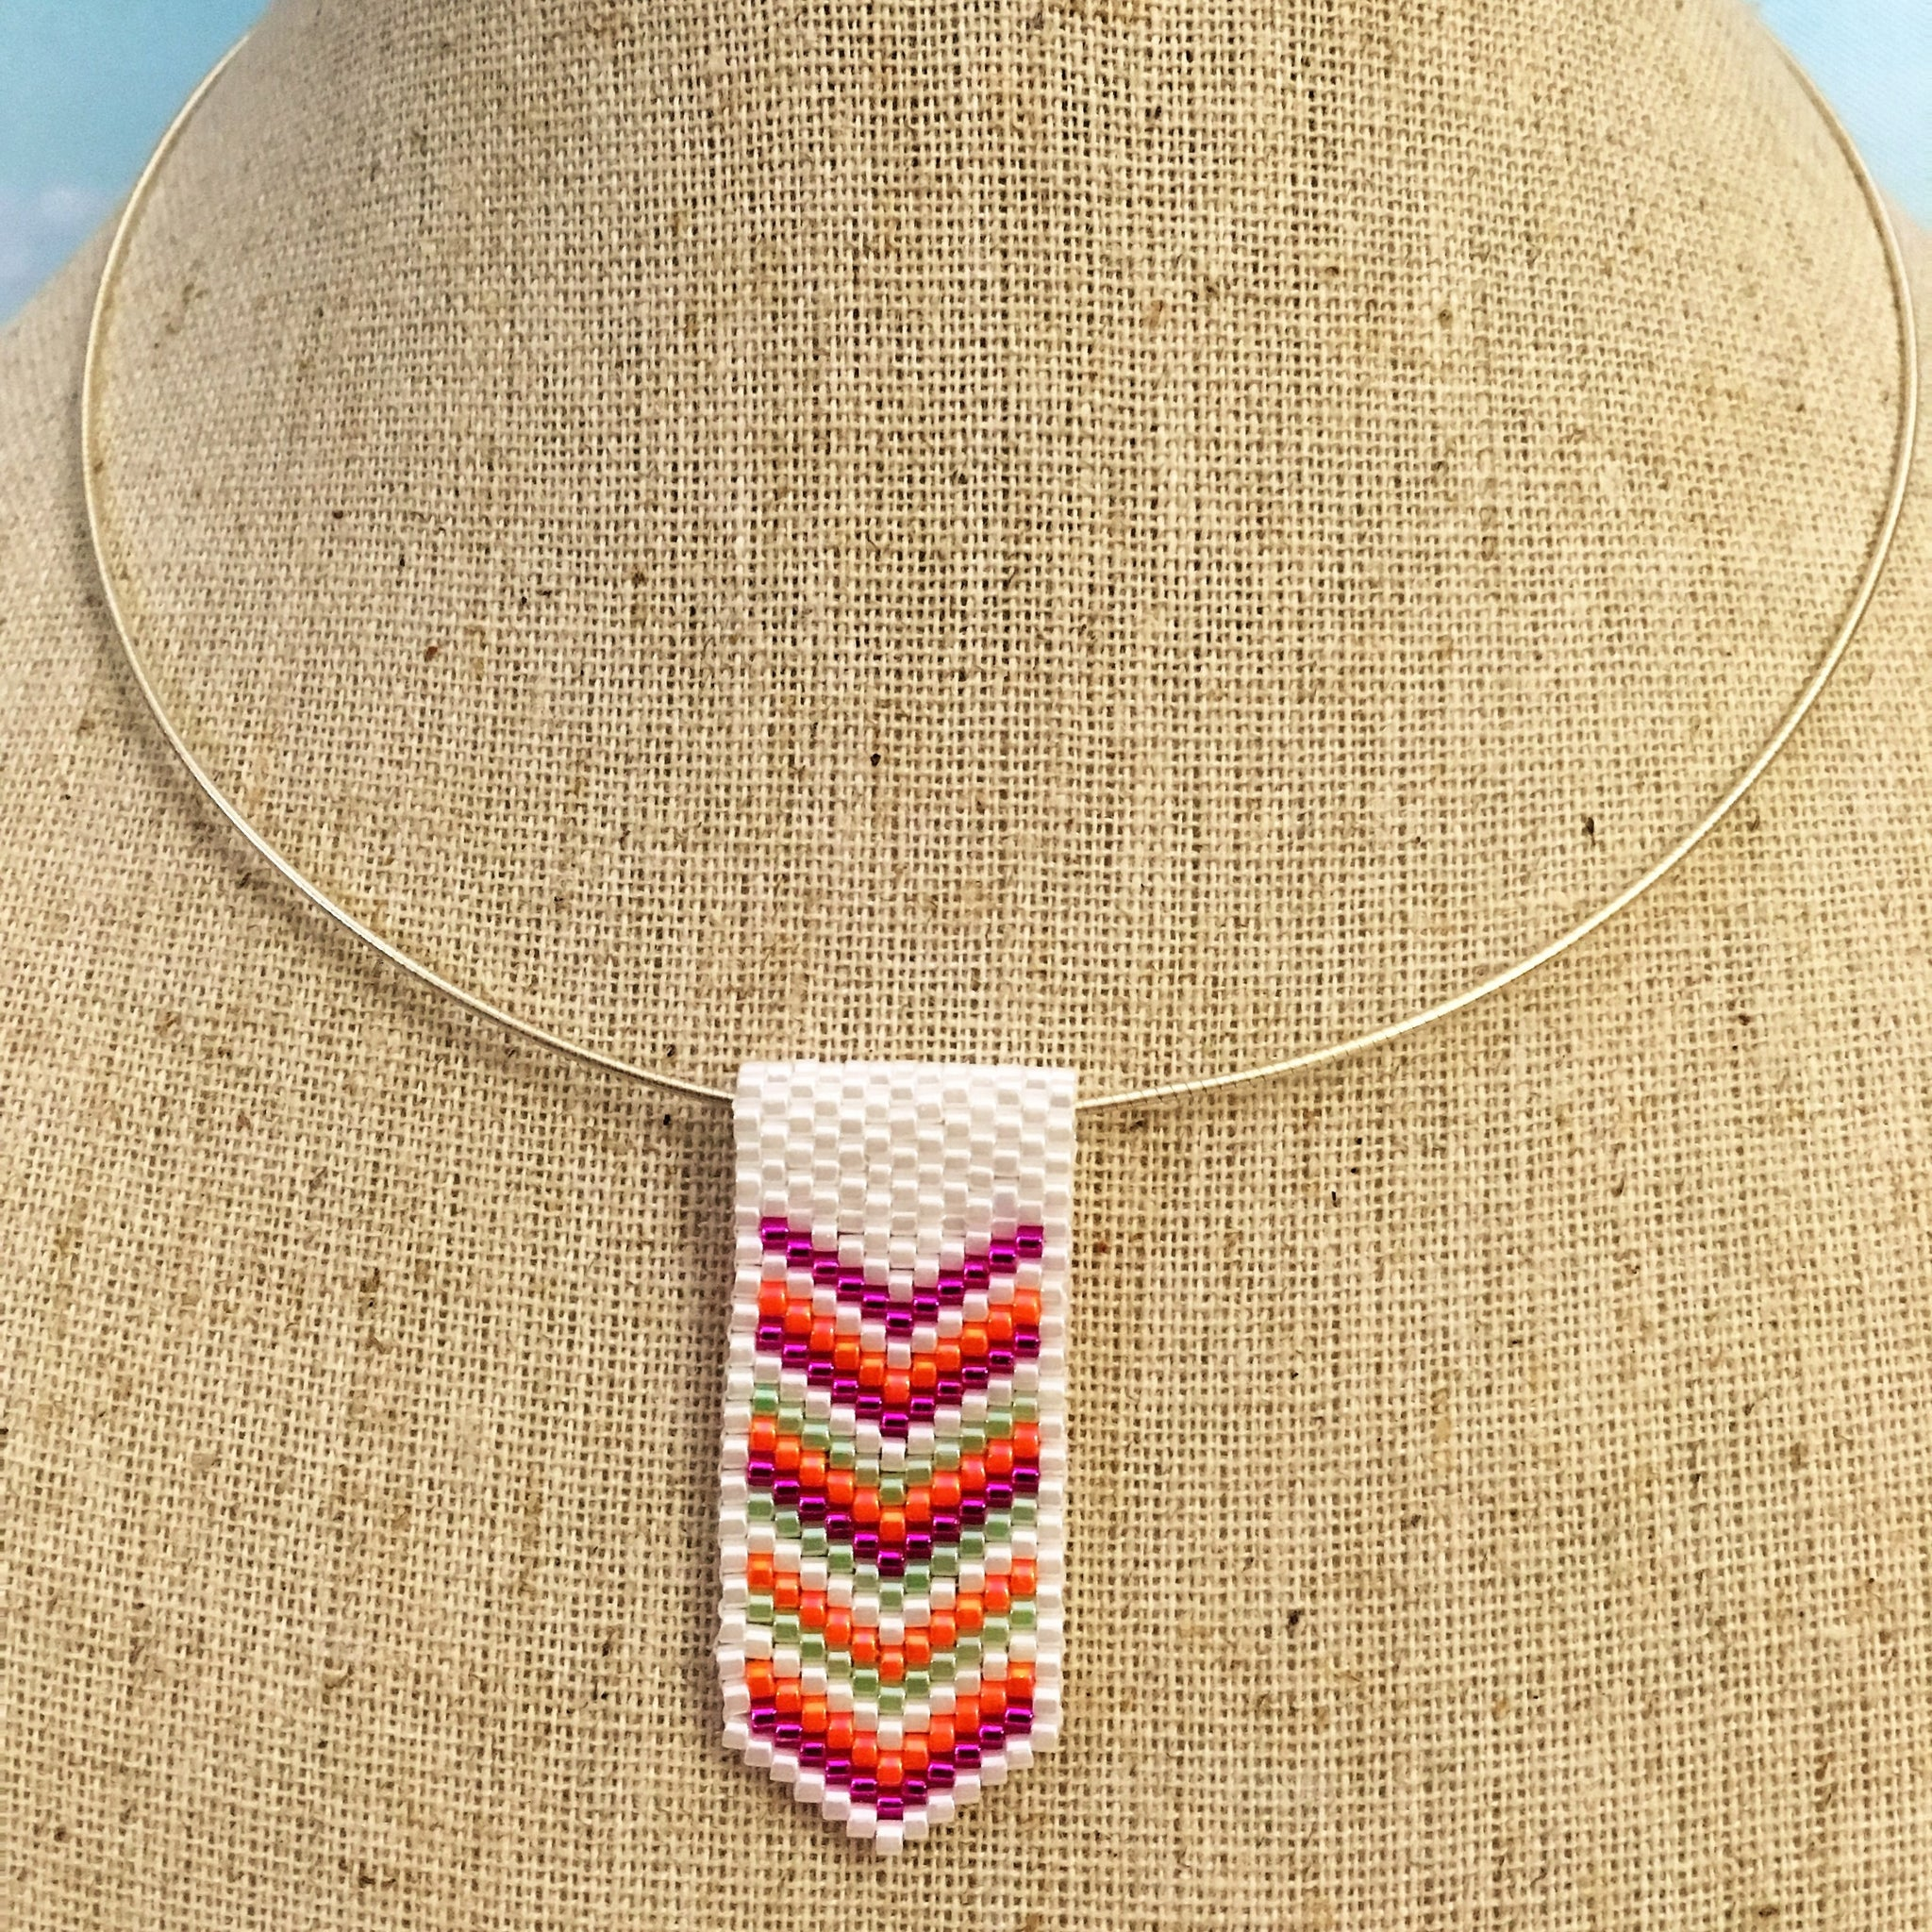 Handmade beaded mini chevron arrows peyote pendant pink orange white